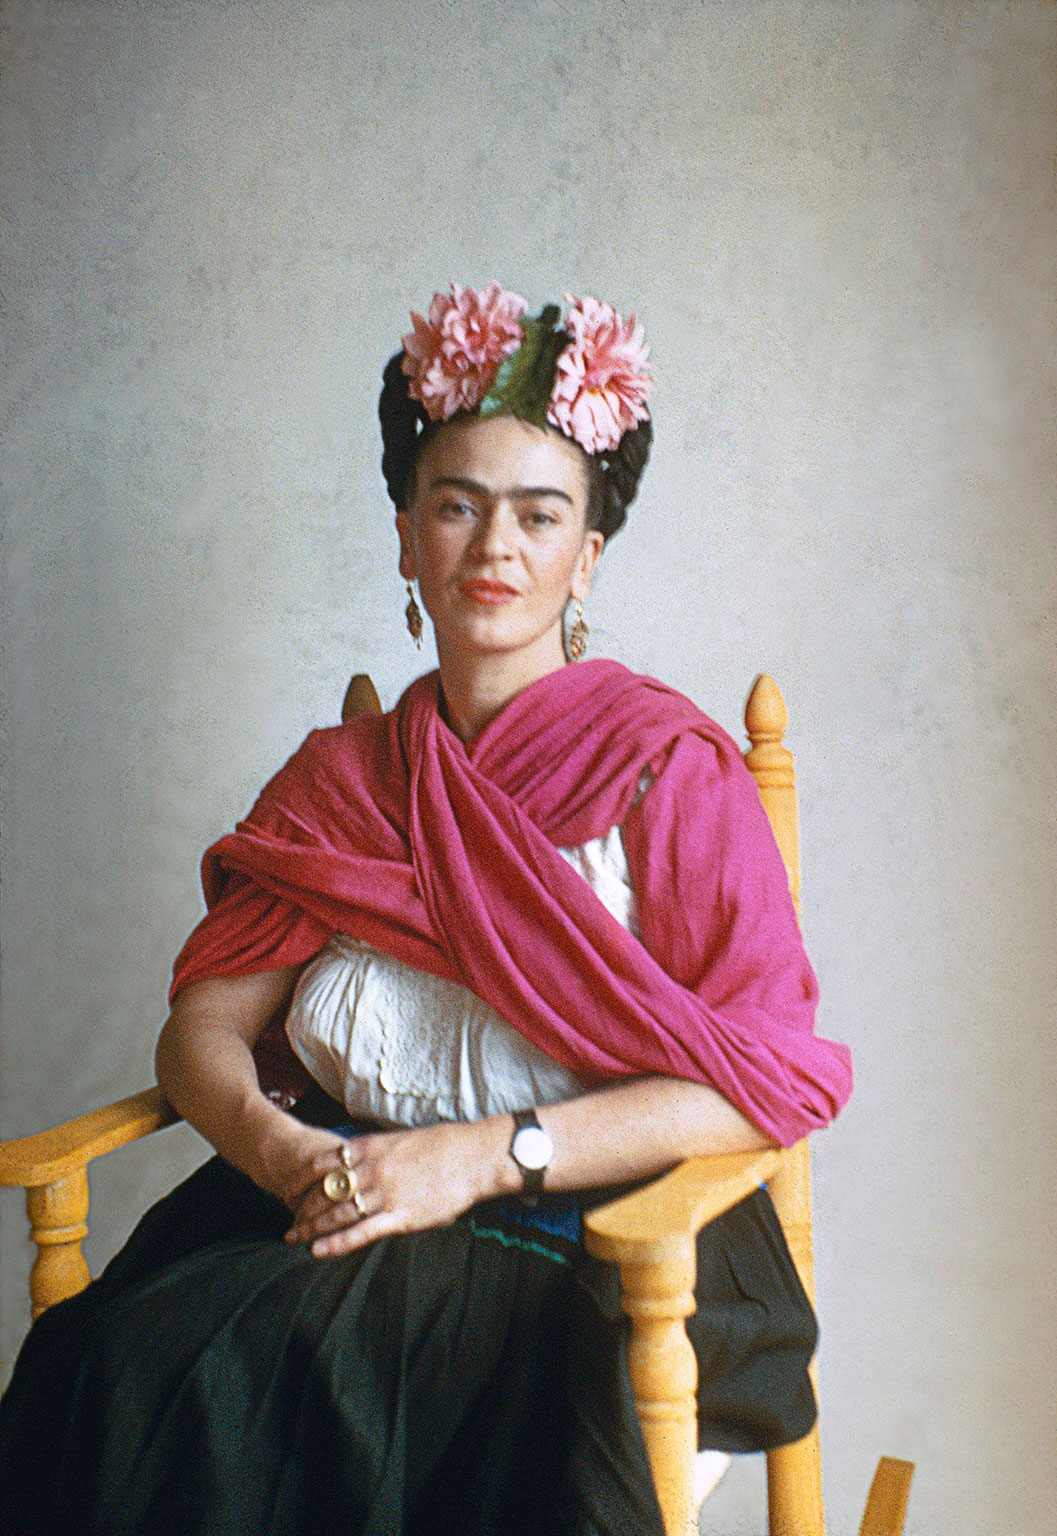 Querying And Queering The Virgin – Sacred Iconography And Profane Iconoclasm In The Art Of Frida Kahlo (Tina Kinsella)